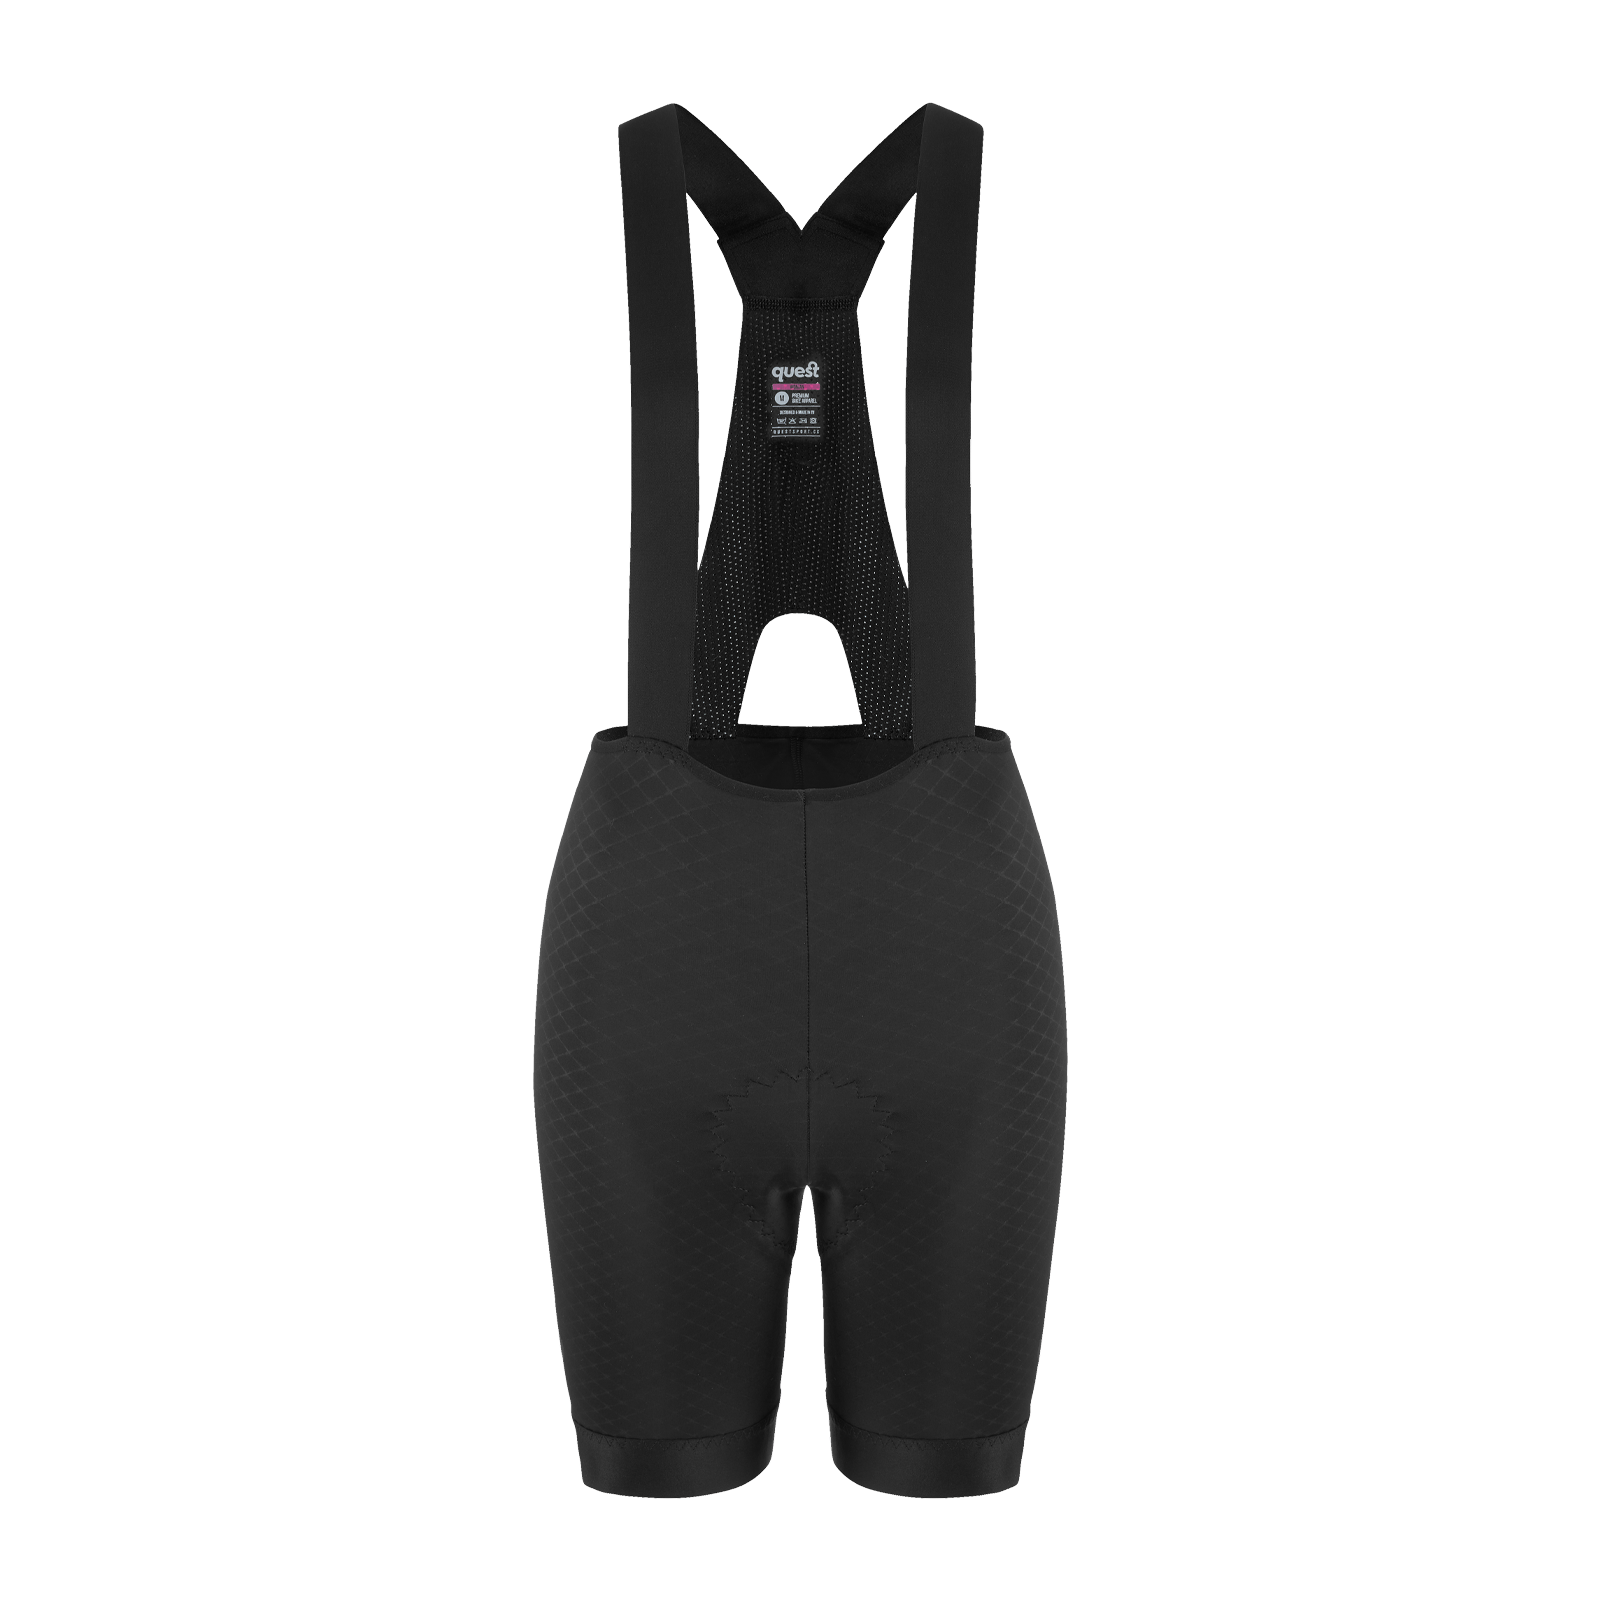 Women's Adventure Bib Shorts - Black - questsport.shop